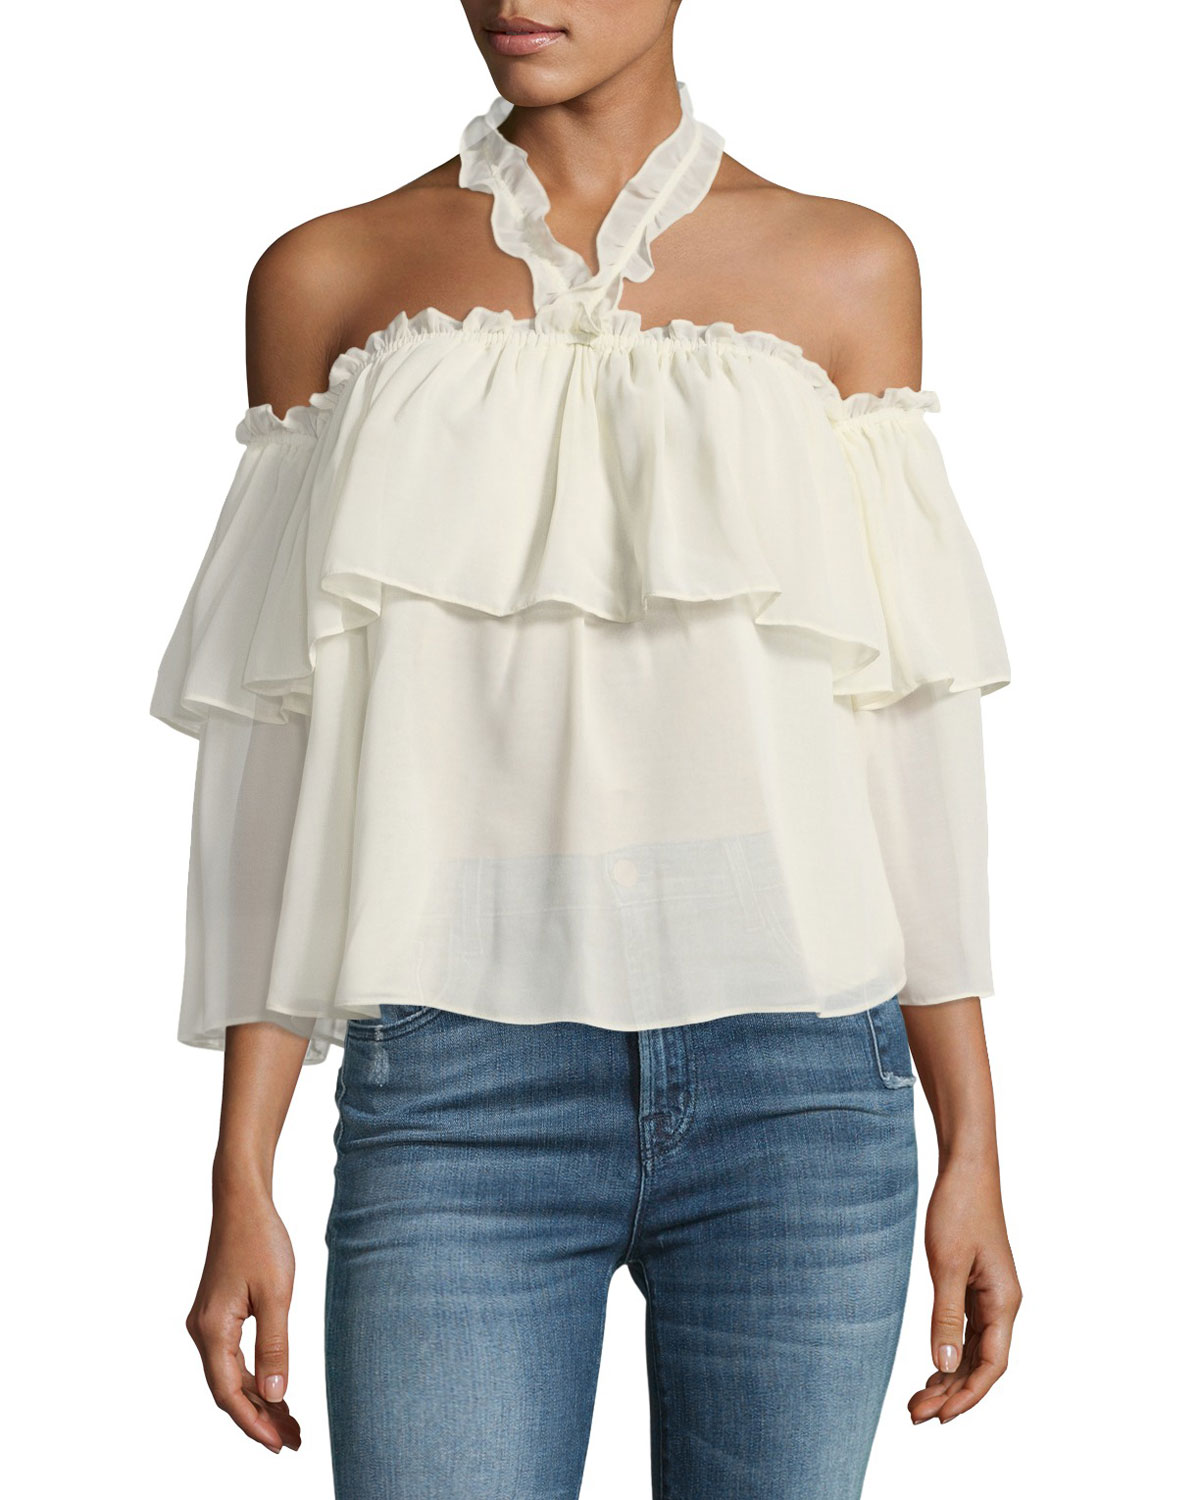 Galle Off-the-Shoulder Ruffled Chiffon Top